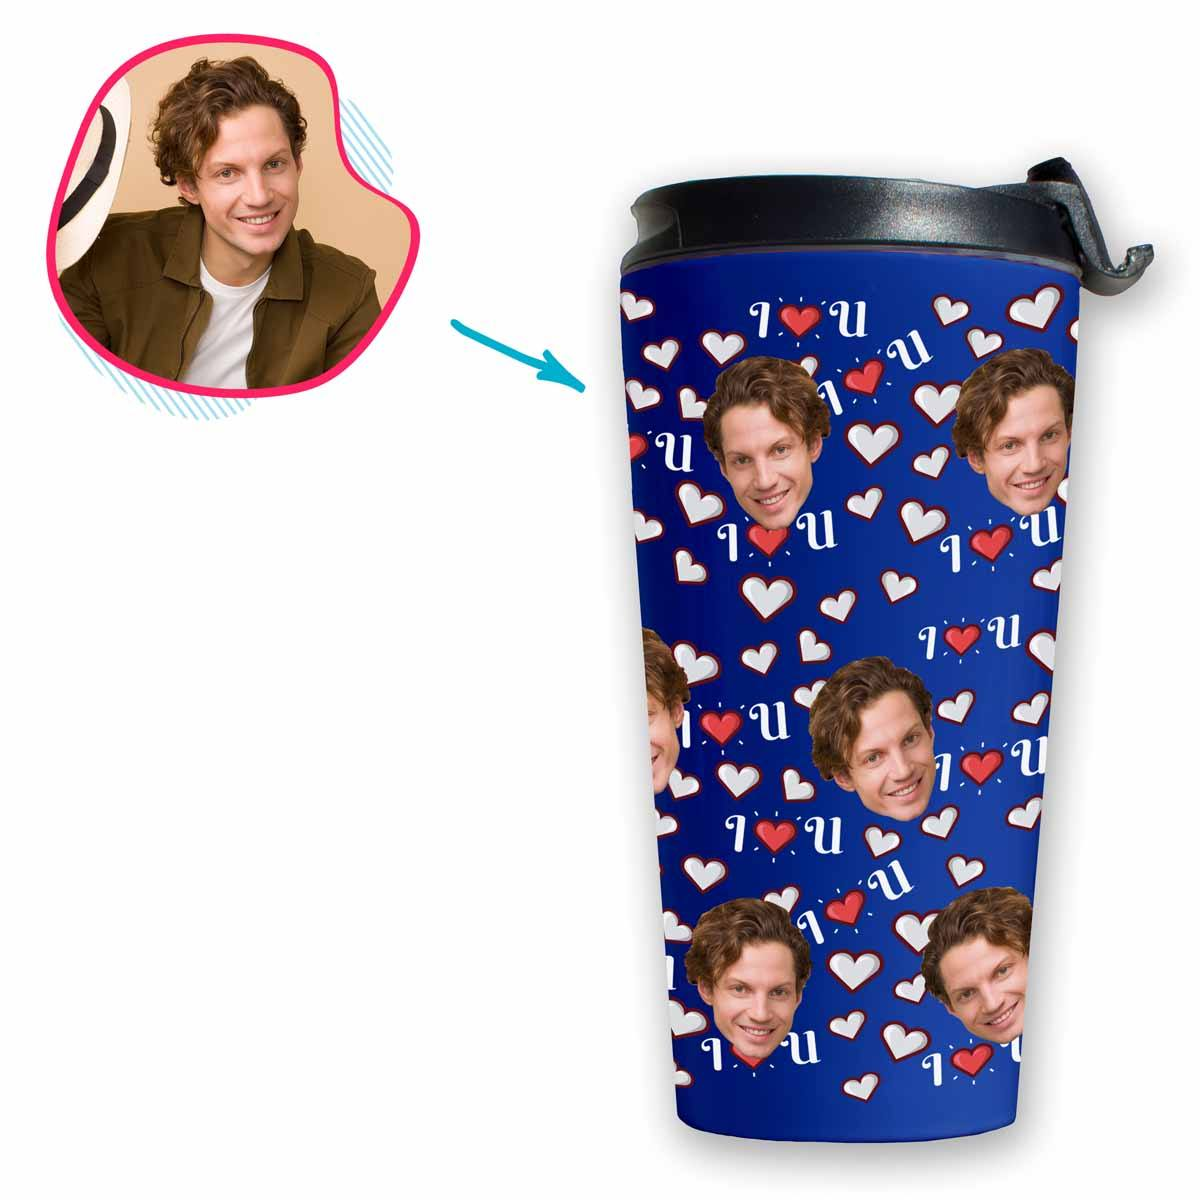 darkblue I <3 You travel mug personalized with photo of face printed on it